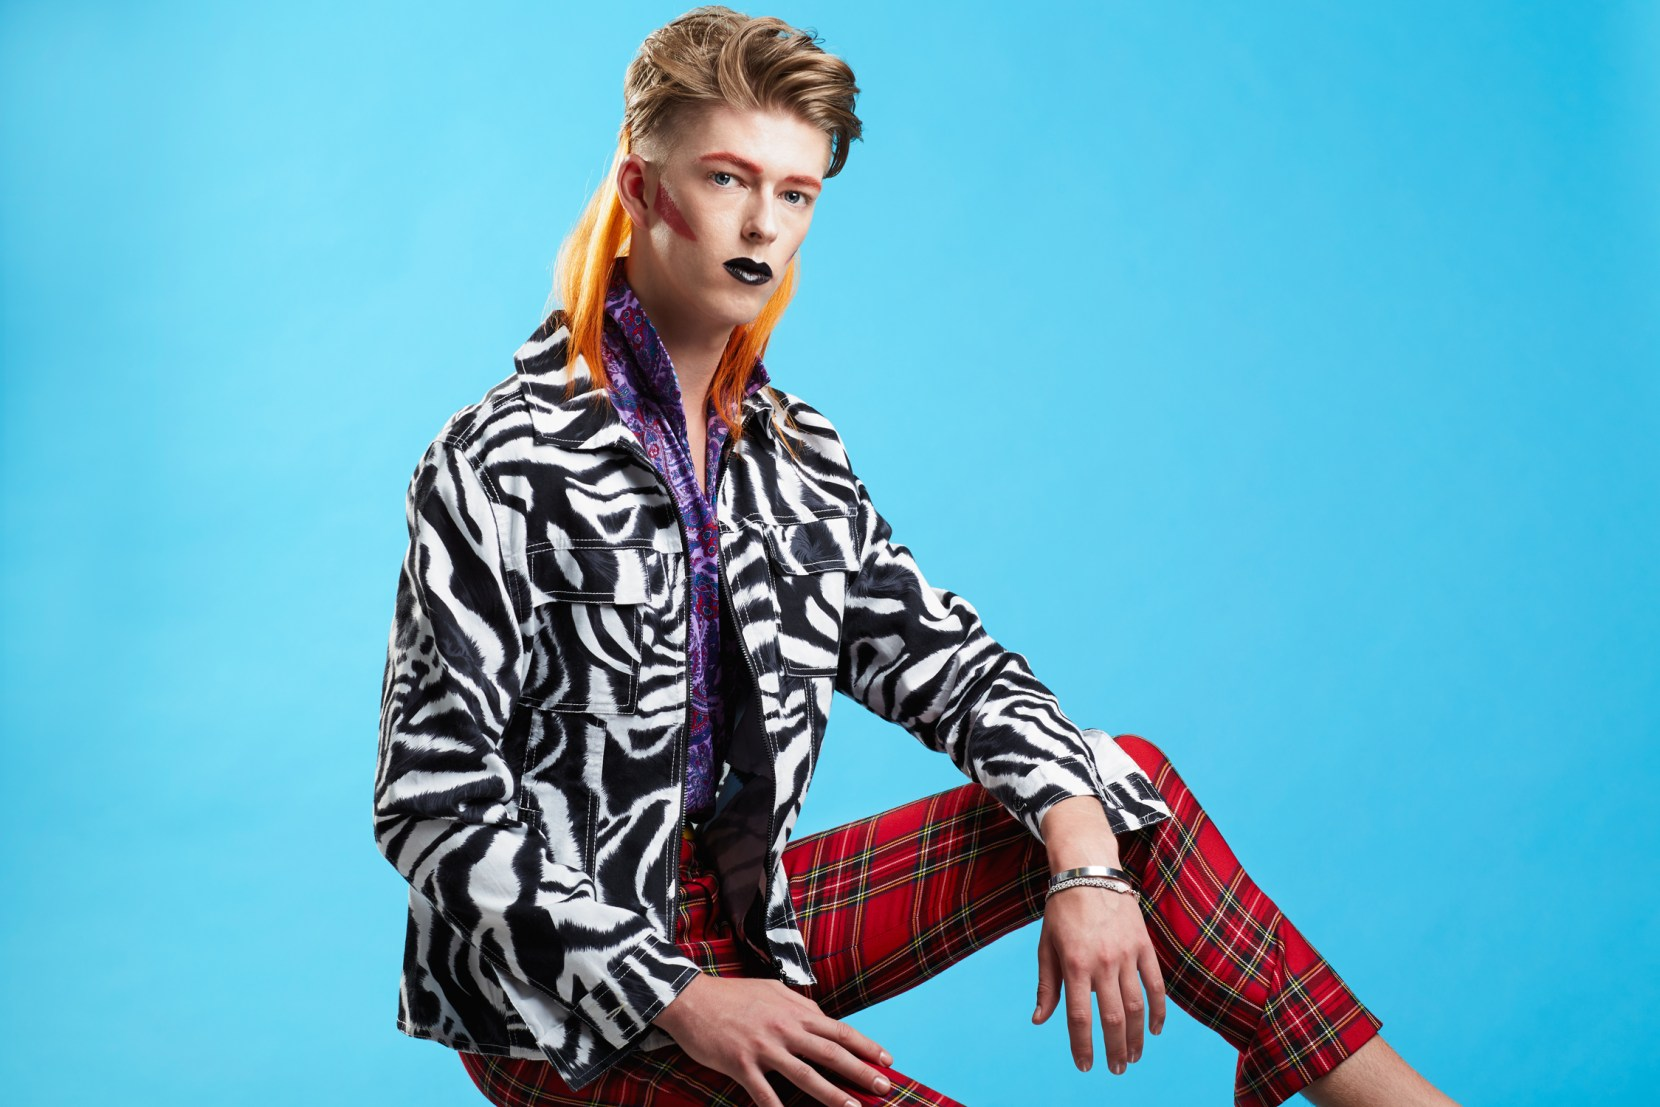 Bowie Punk shot by Lucy Alcorn